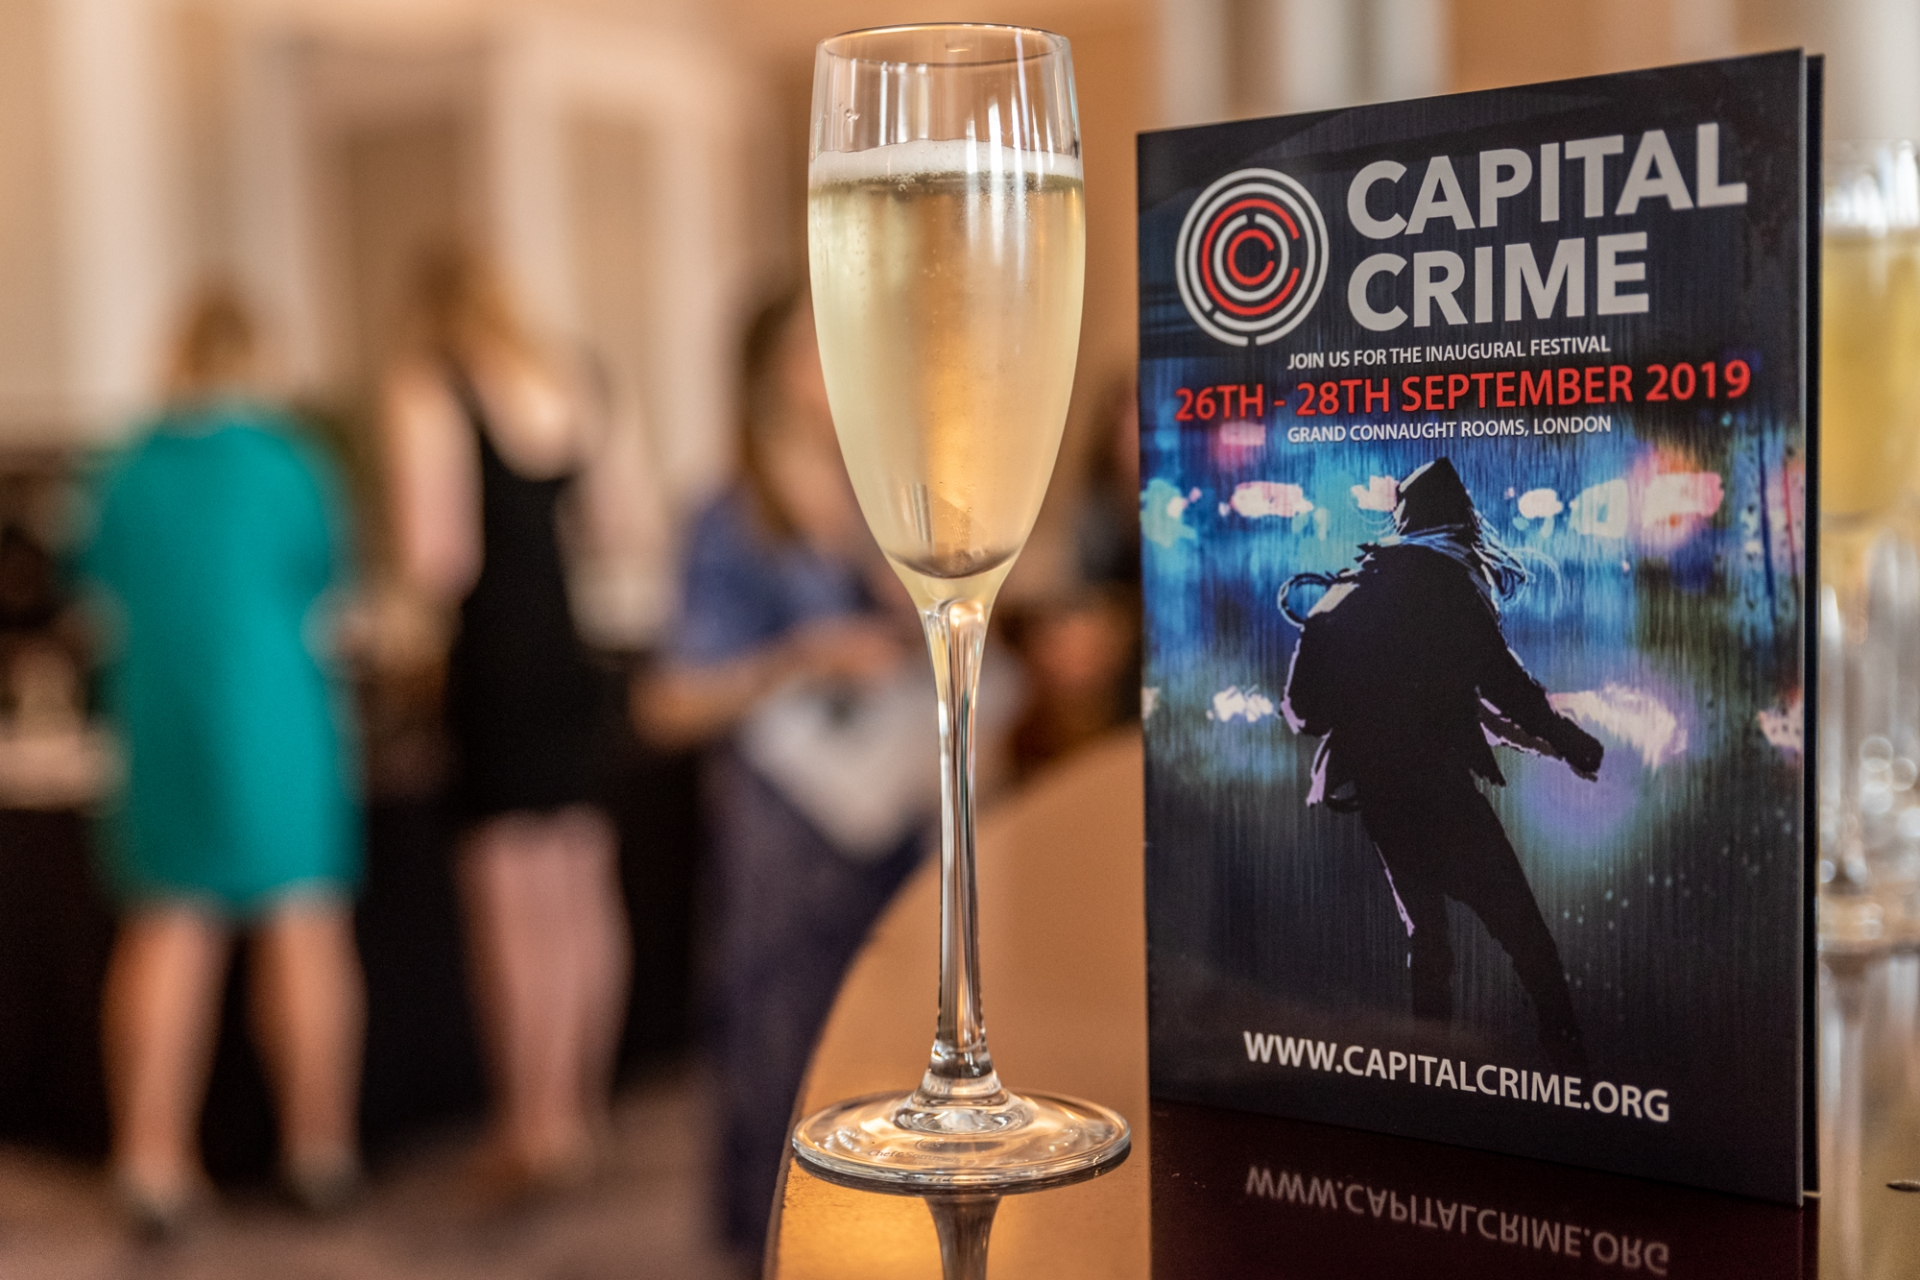 10 Things You Need to Know About the Capital Crime Festival!